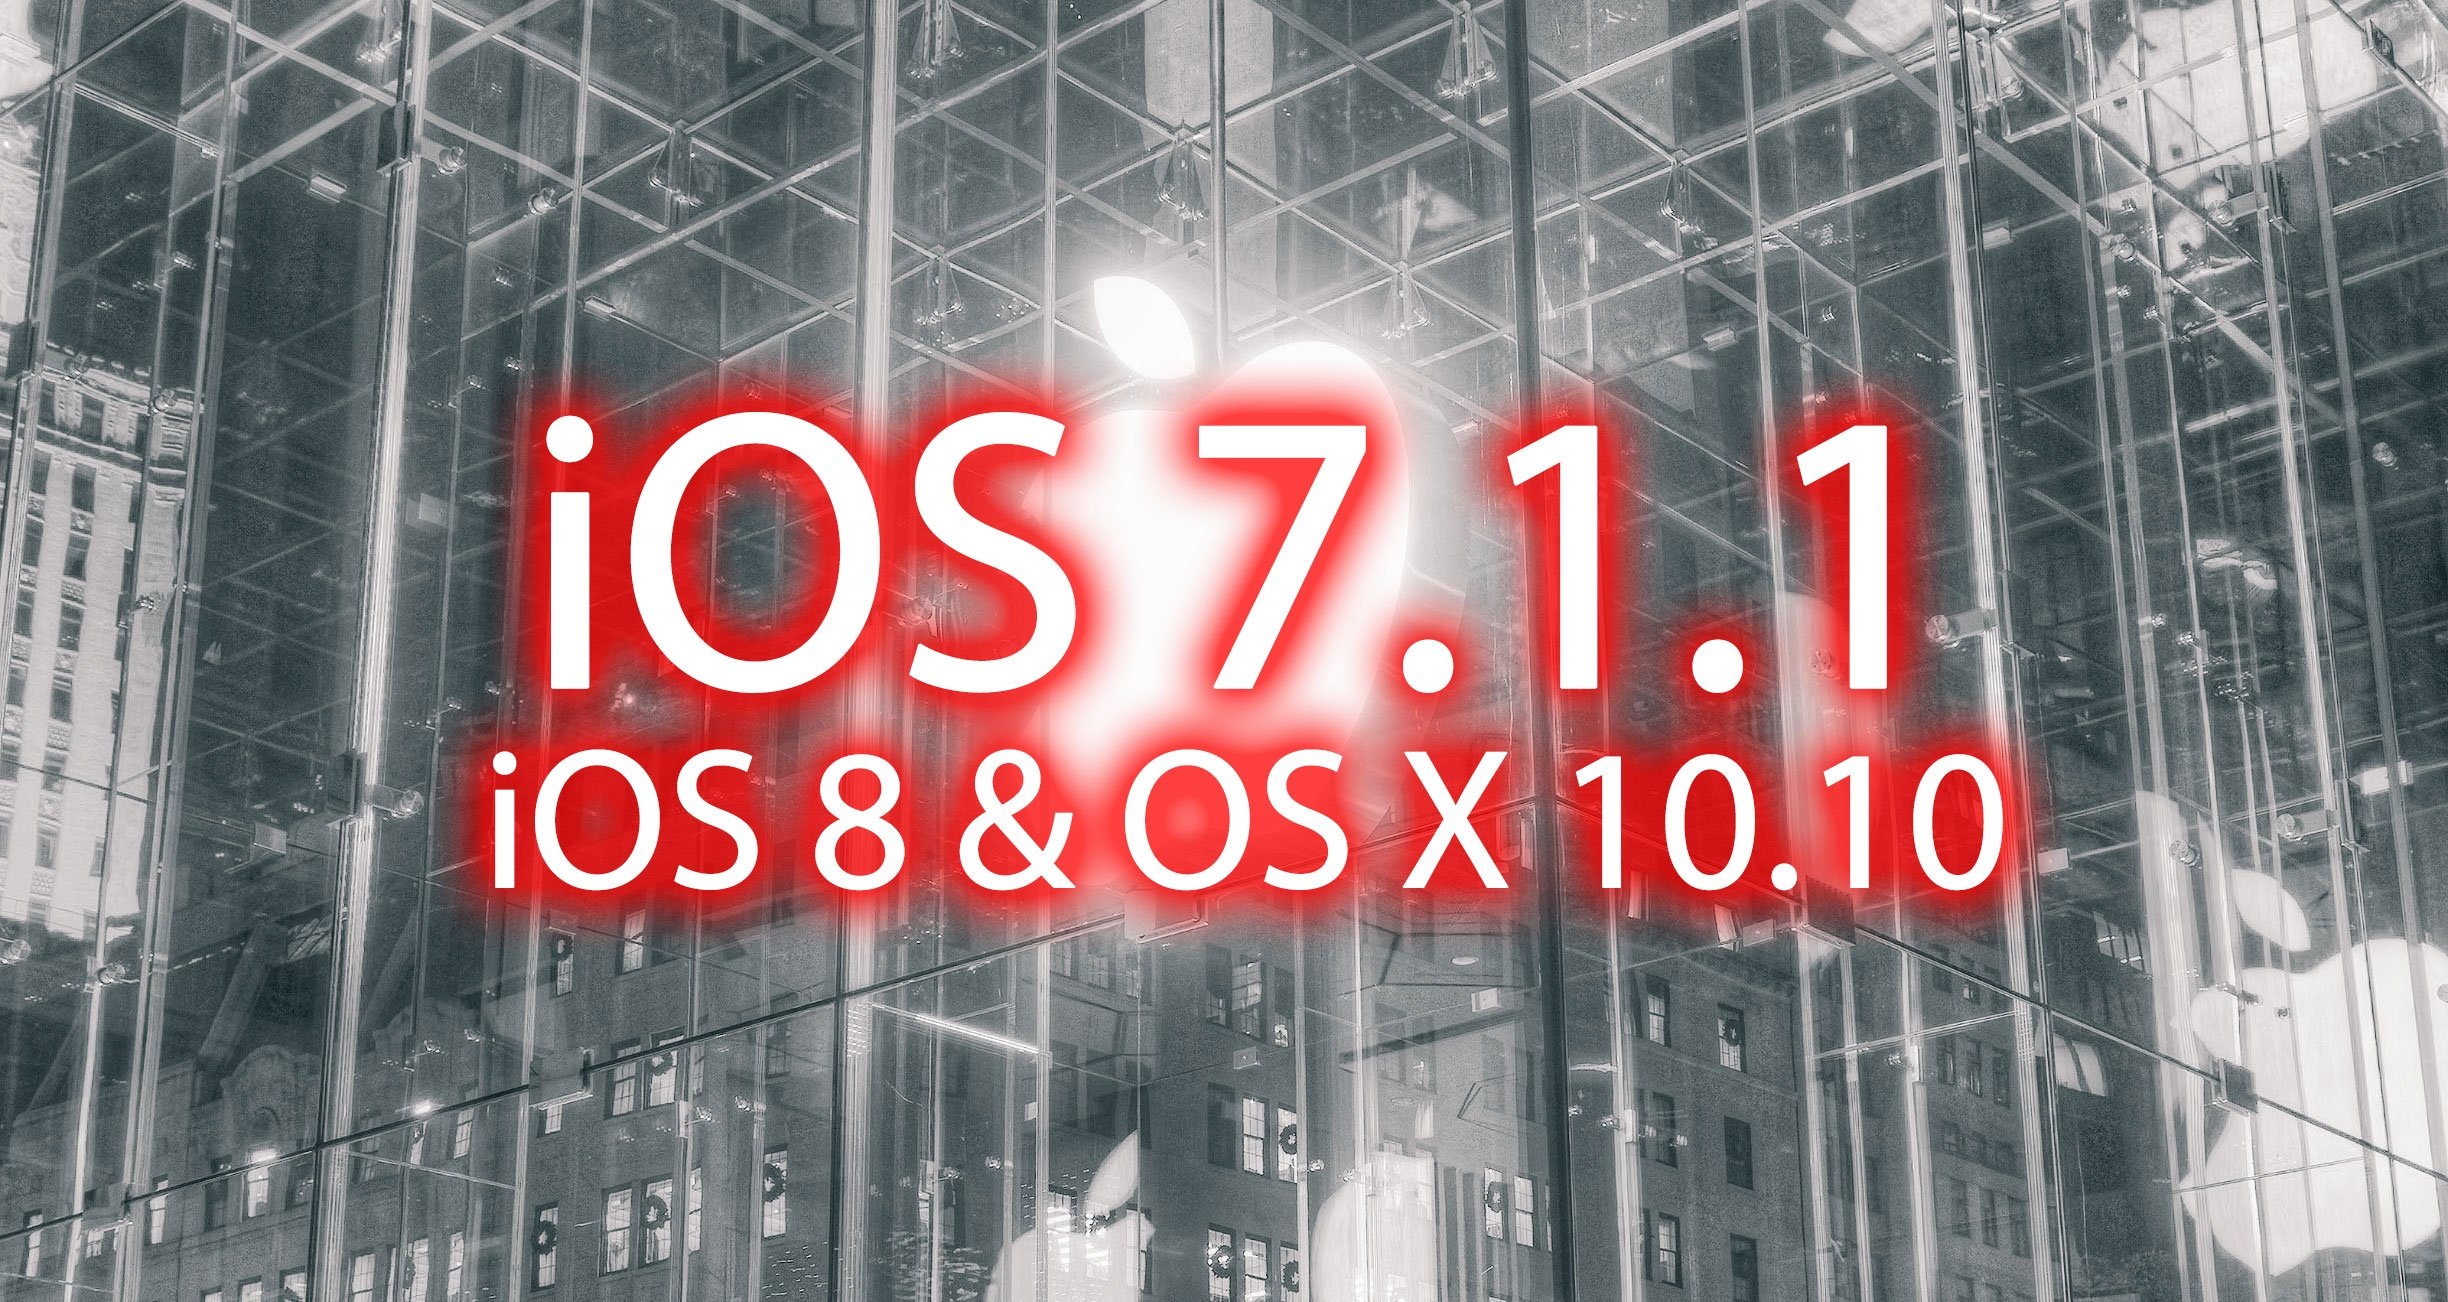 Ios 7 1 1 update kommt ios 8 os x im test for Cortinas 10 x 10